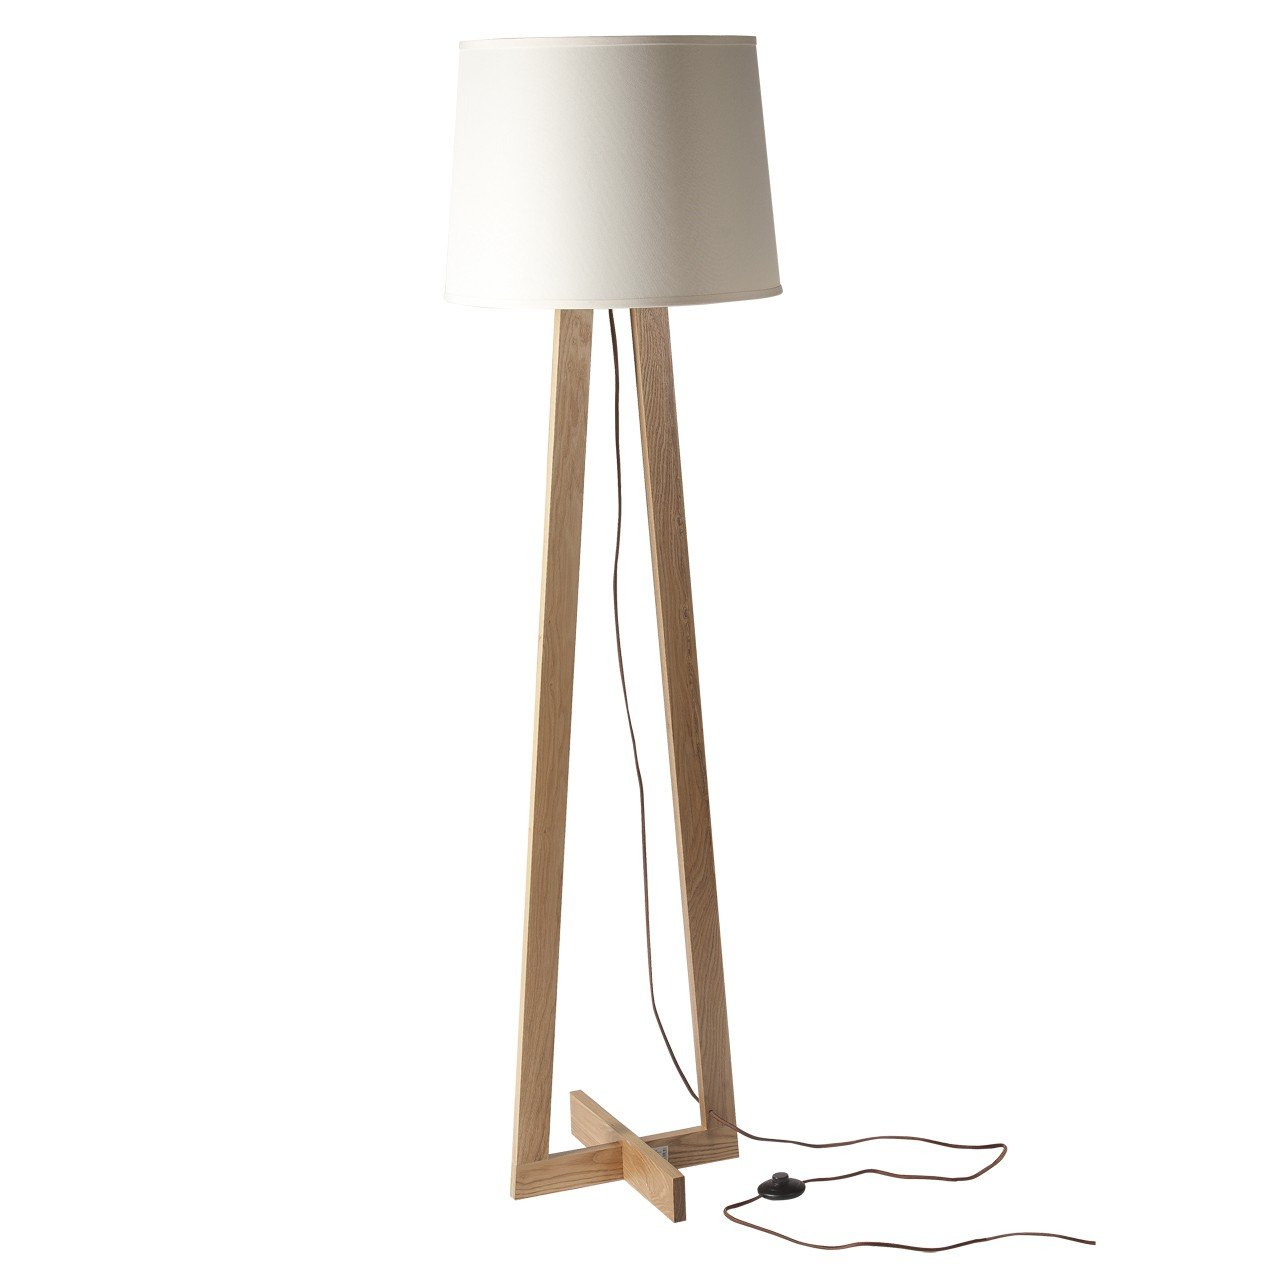 Retro Torchier With Wooden Legs White Shade 1 Bulb E27 1x60w 230v